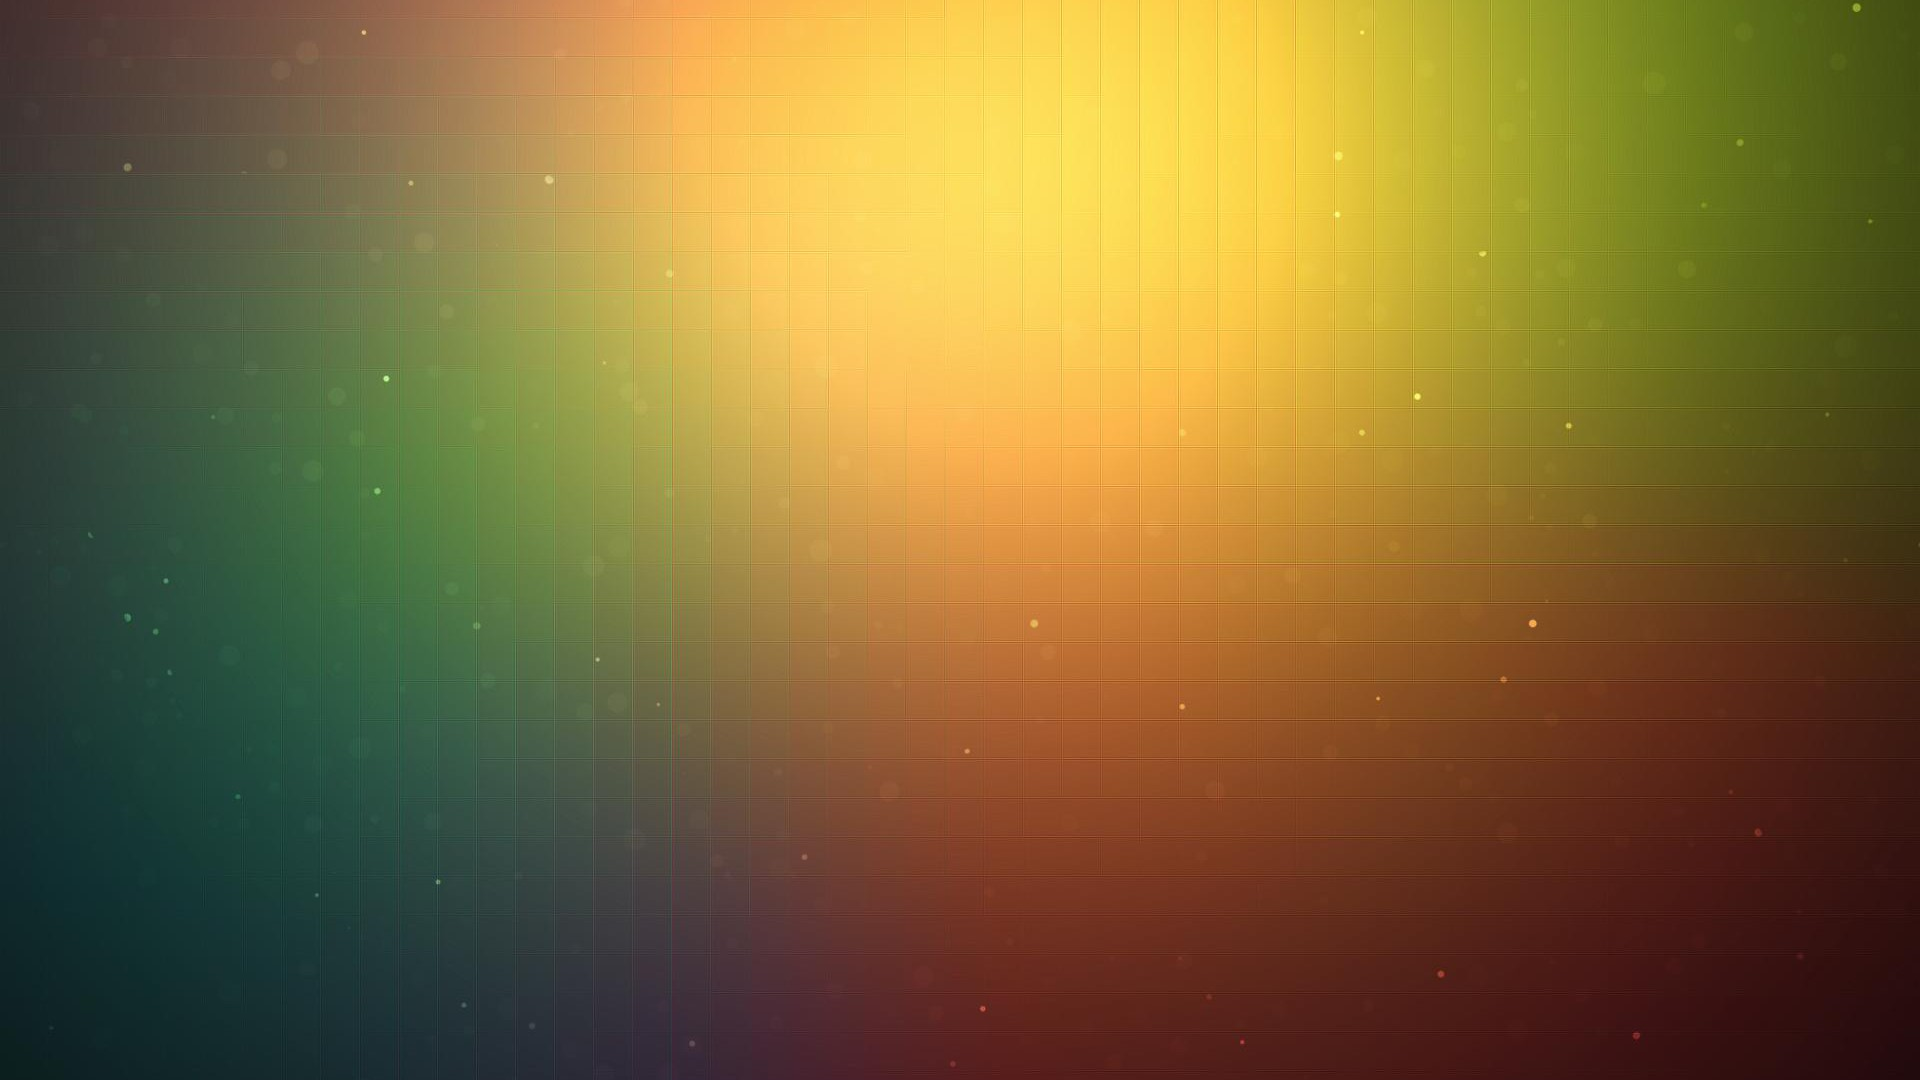 Simple Wallpapers Free Download